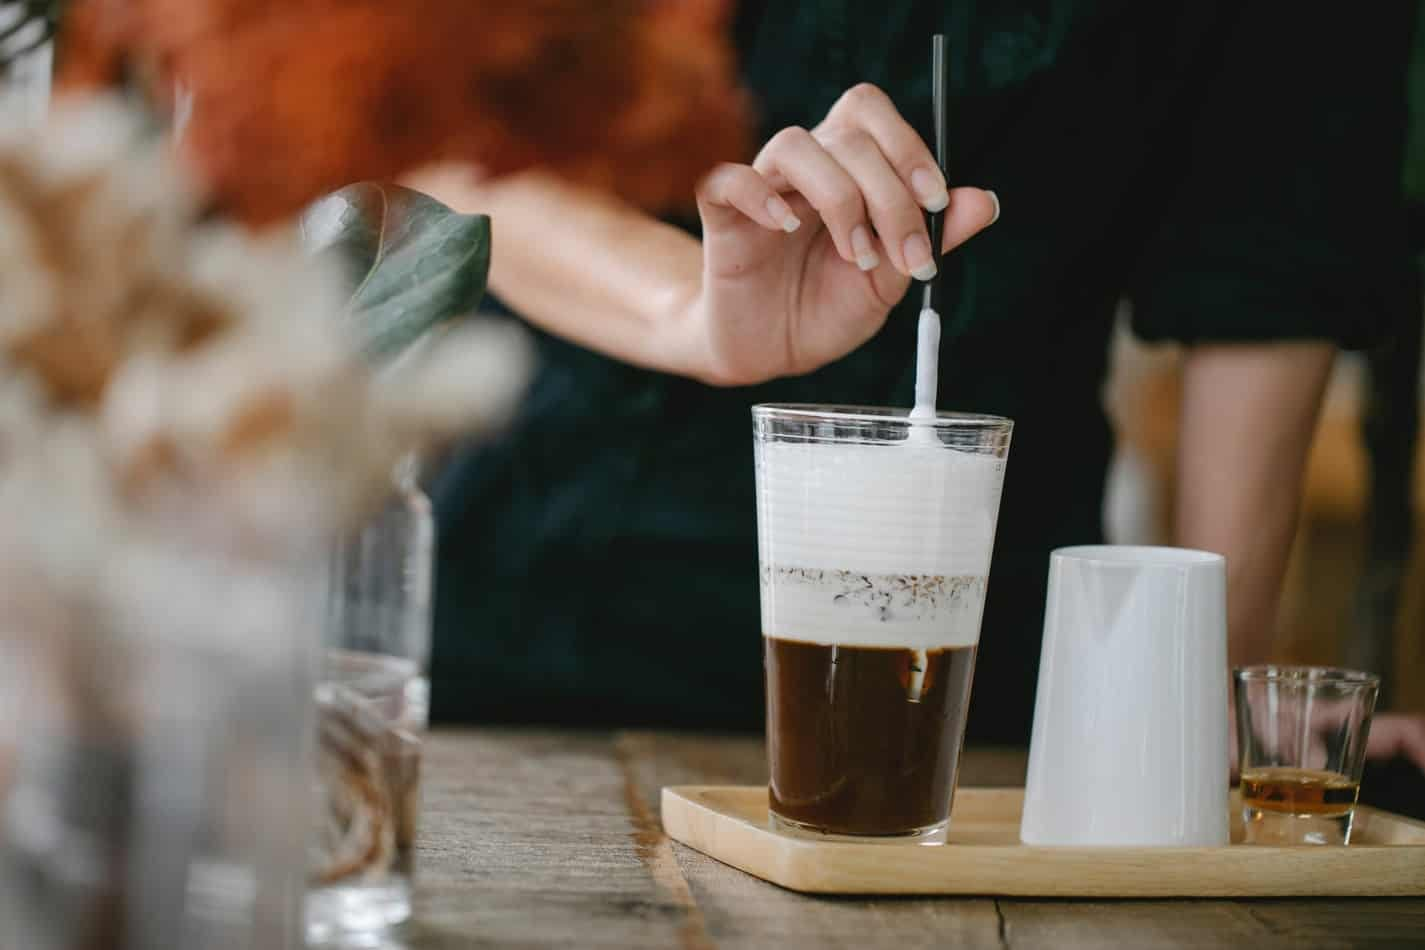 crop unrecognizable woman putting straw in glass of iced latte